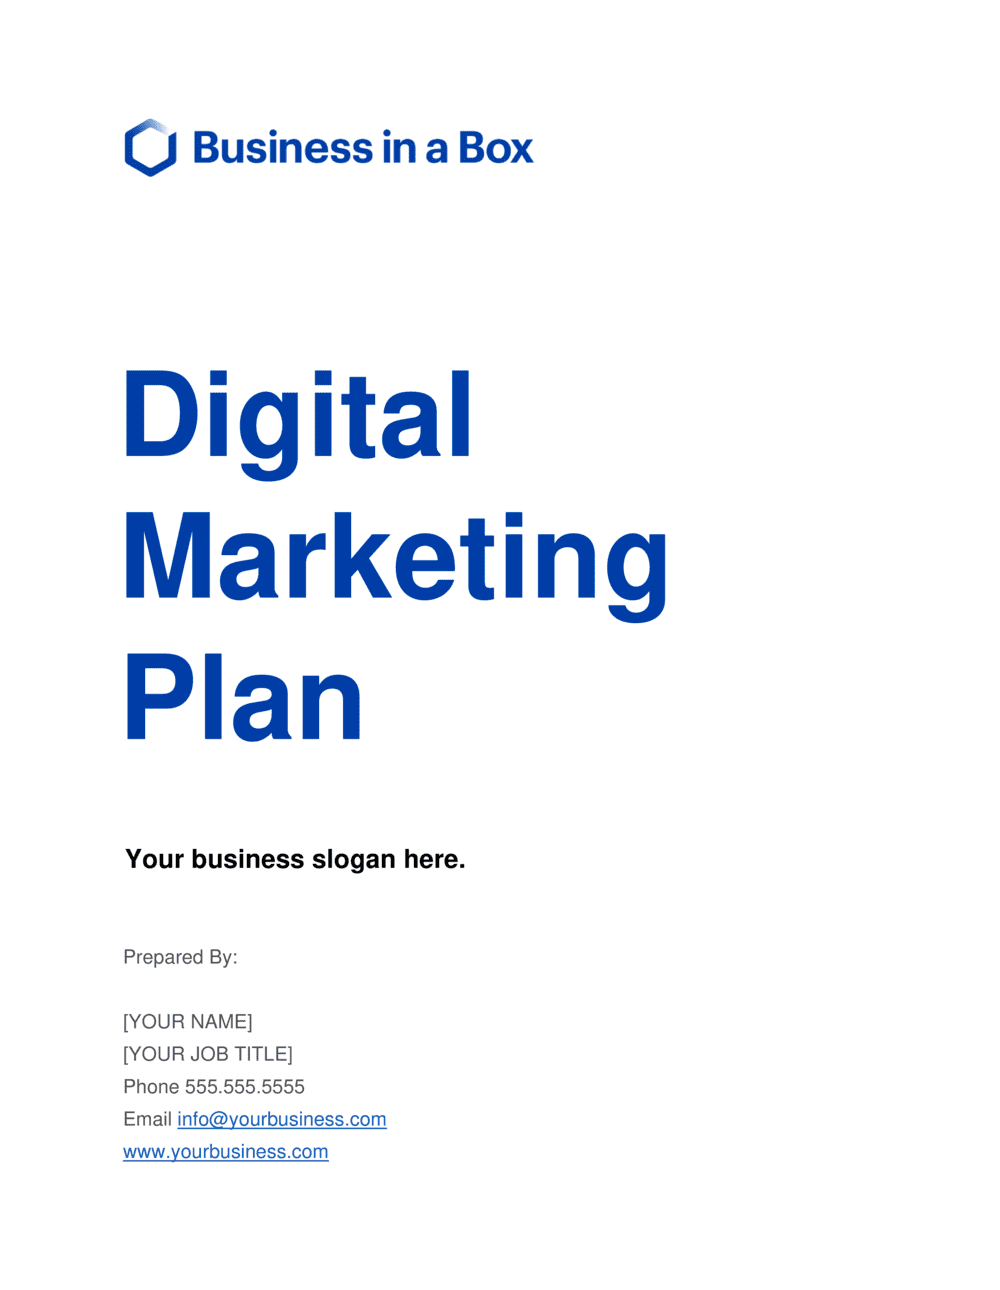 Business-in-a-Box's Digital Marketing Plan Template